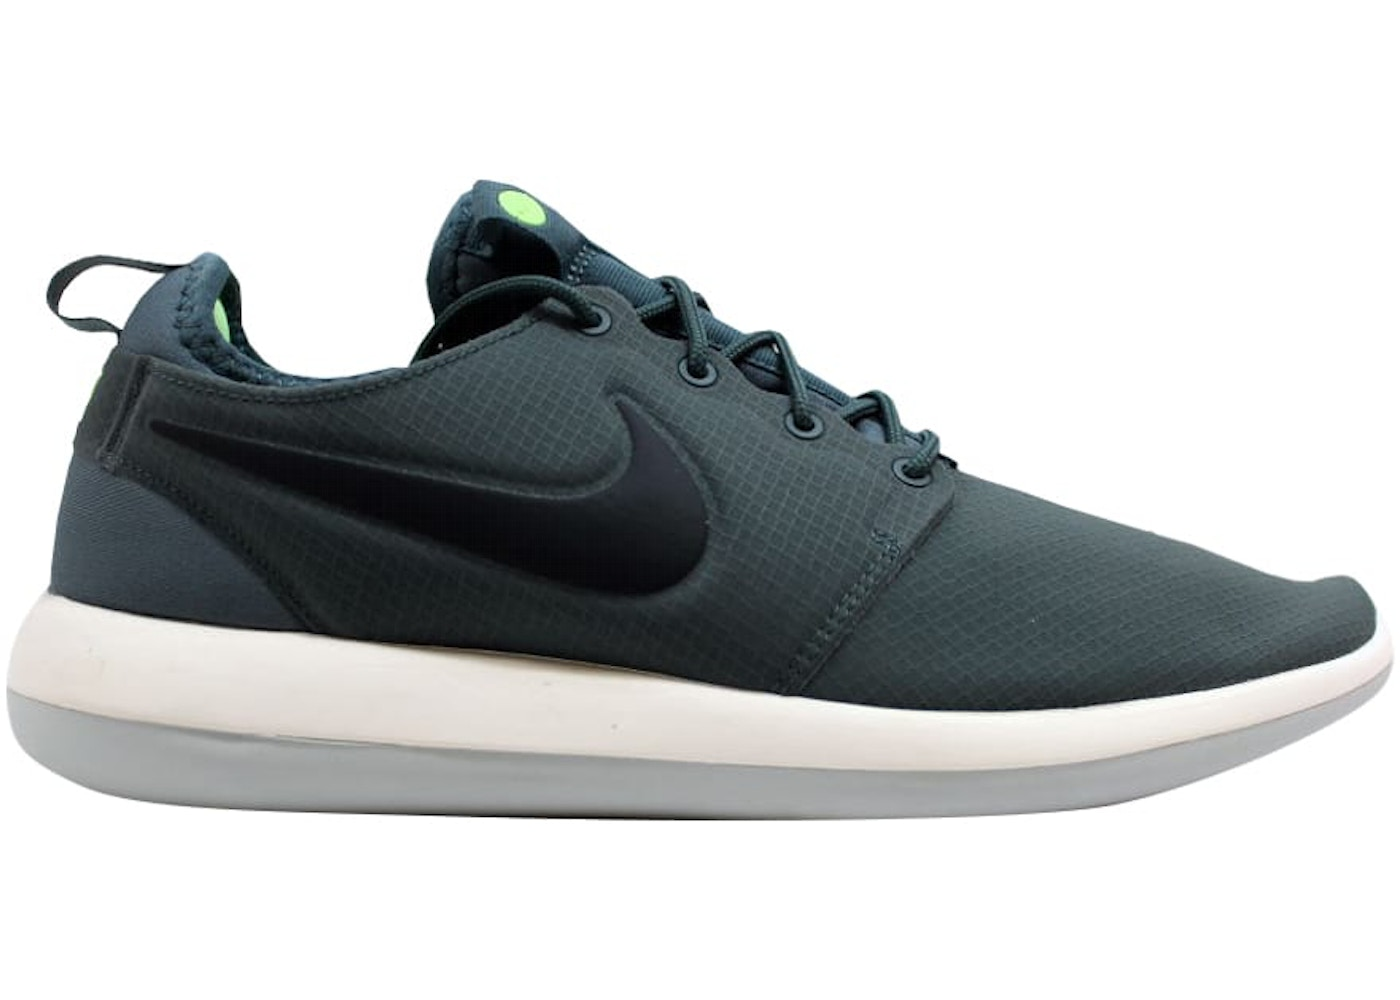 best sneakers 1d338 649b5 Nike Roshe Two 2 SE Hasta/Anthracite-Ghost Green